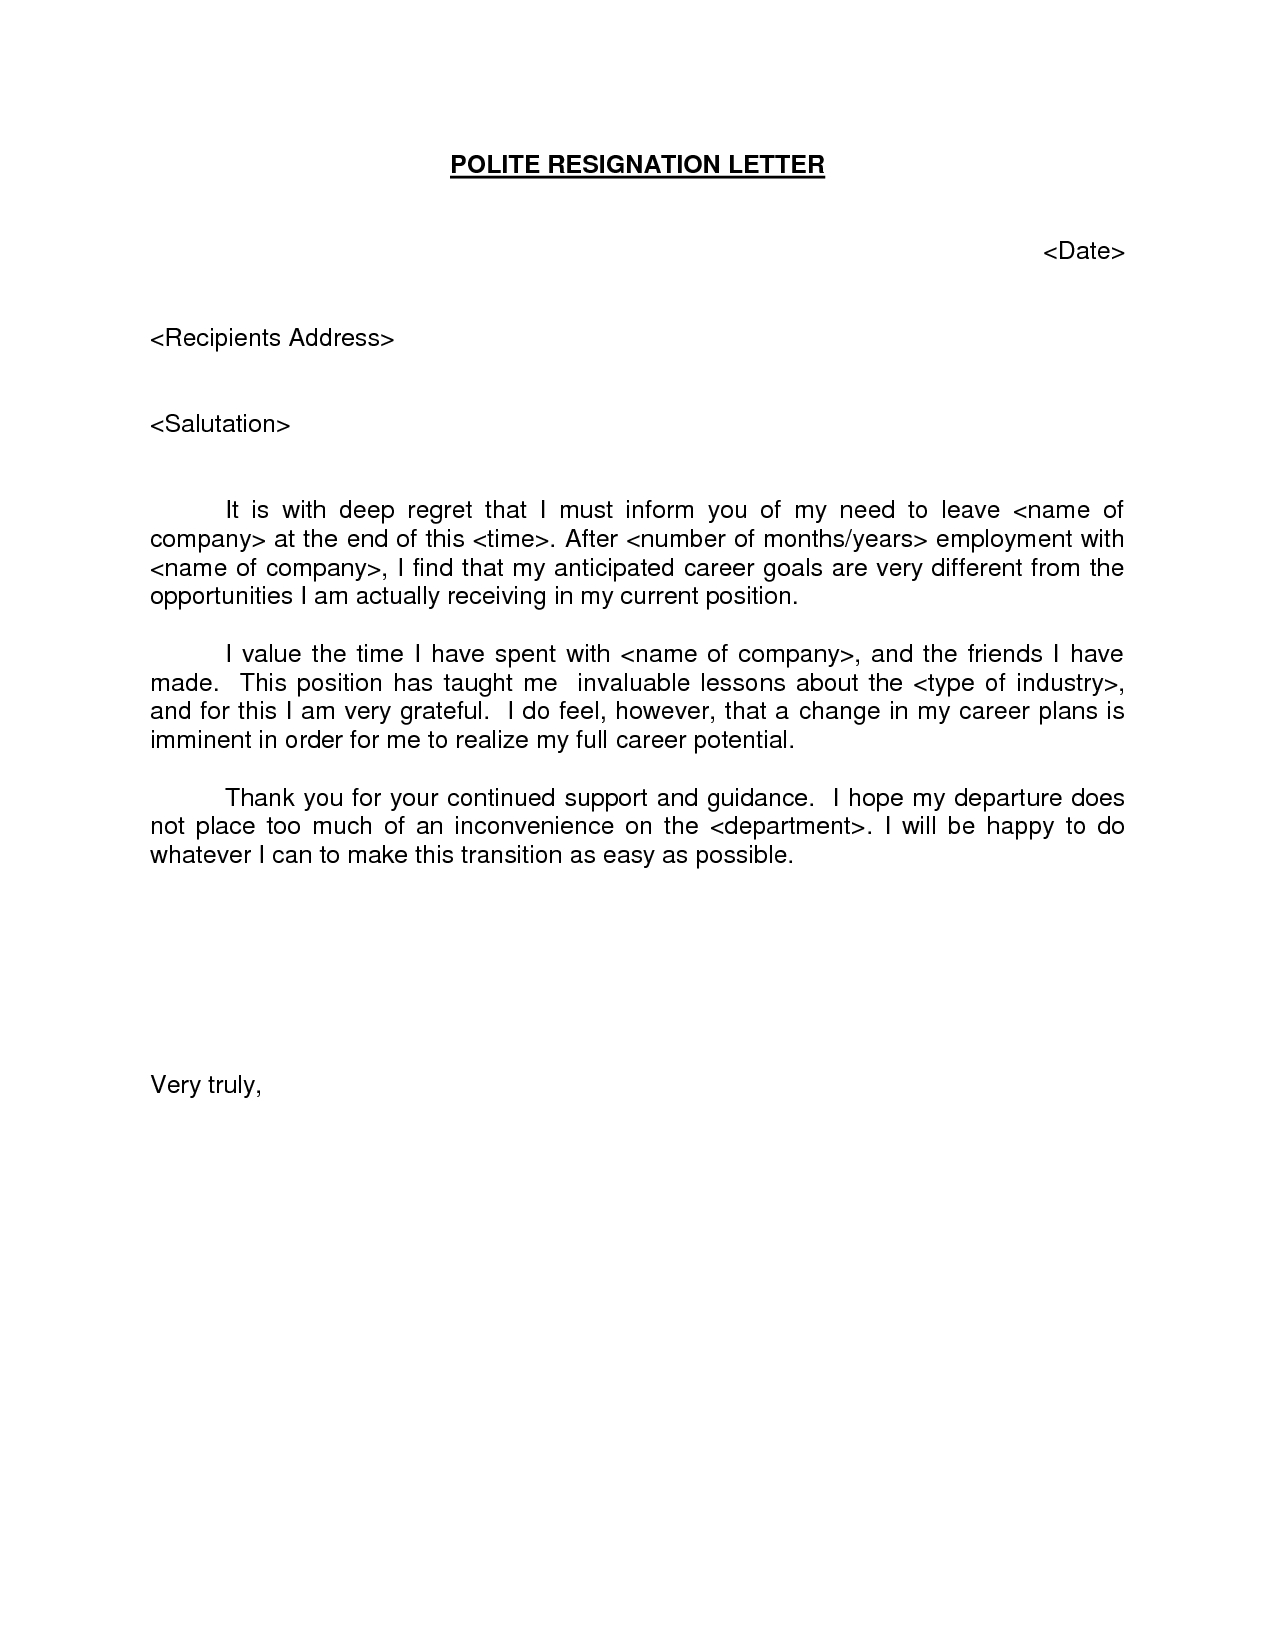 professional resignation letter template Collection-POLITE RESIGNATION LETTER BestdealformoneyWriting A Letter Resignation Email Letter Sample 3-g